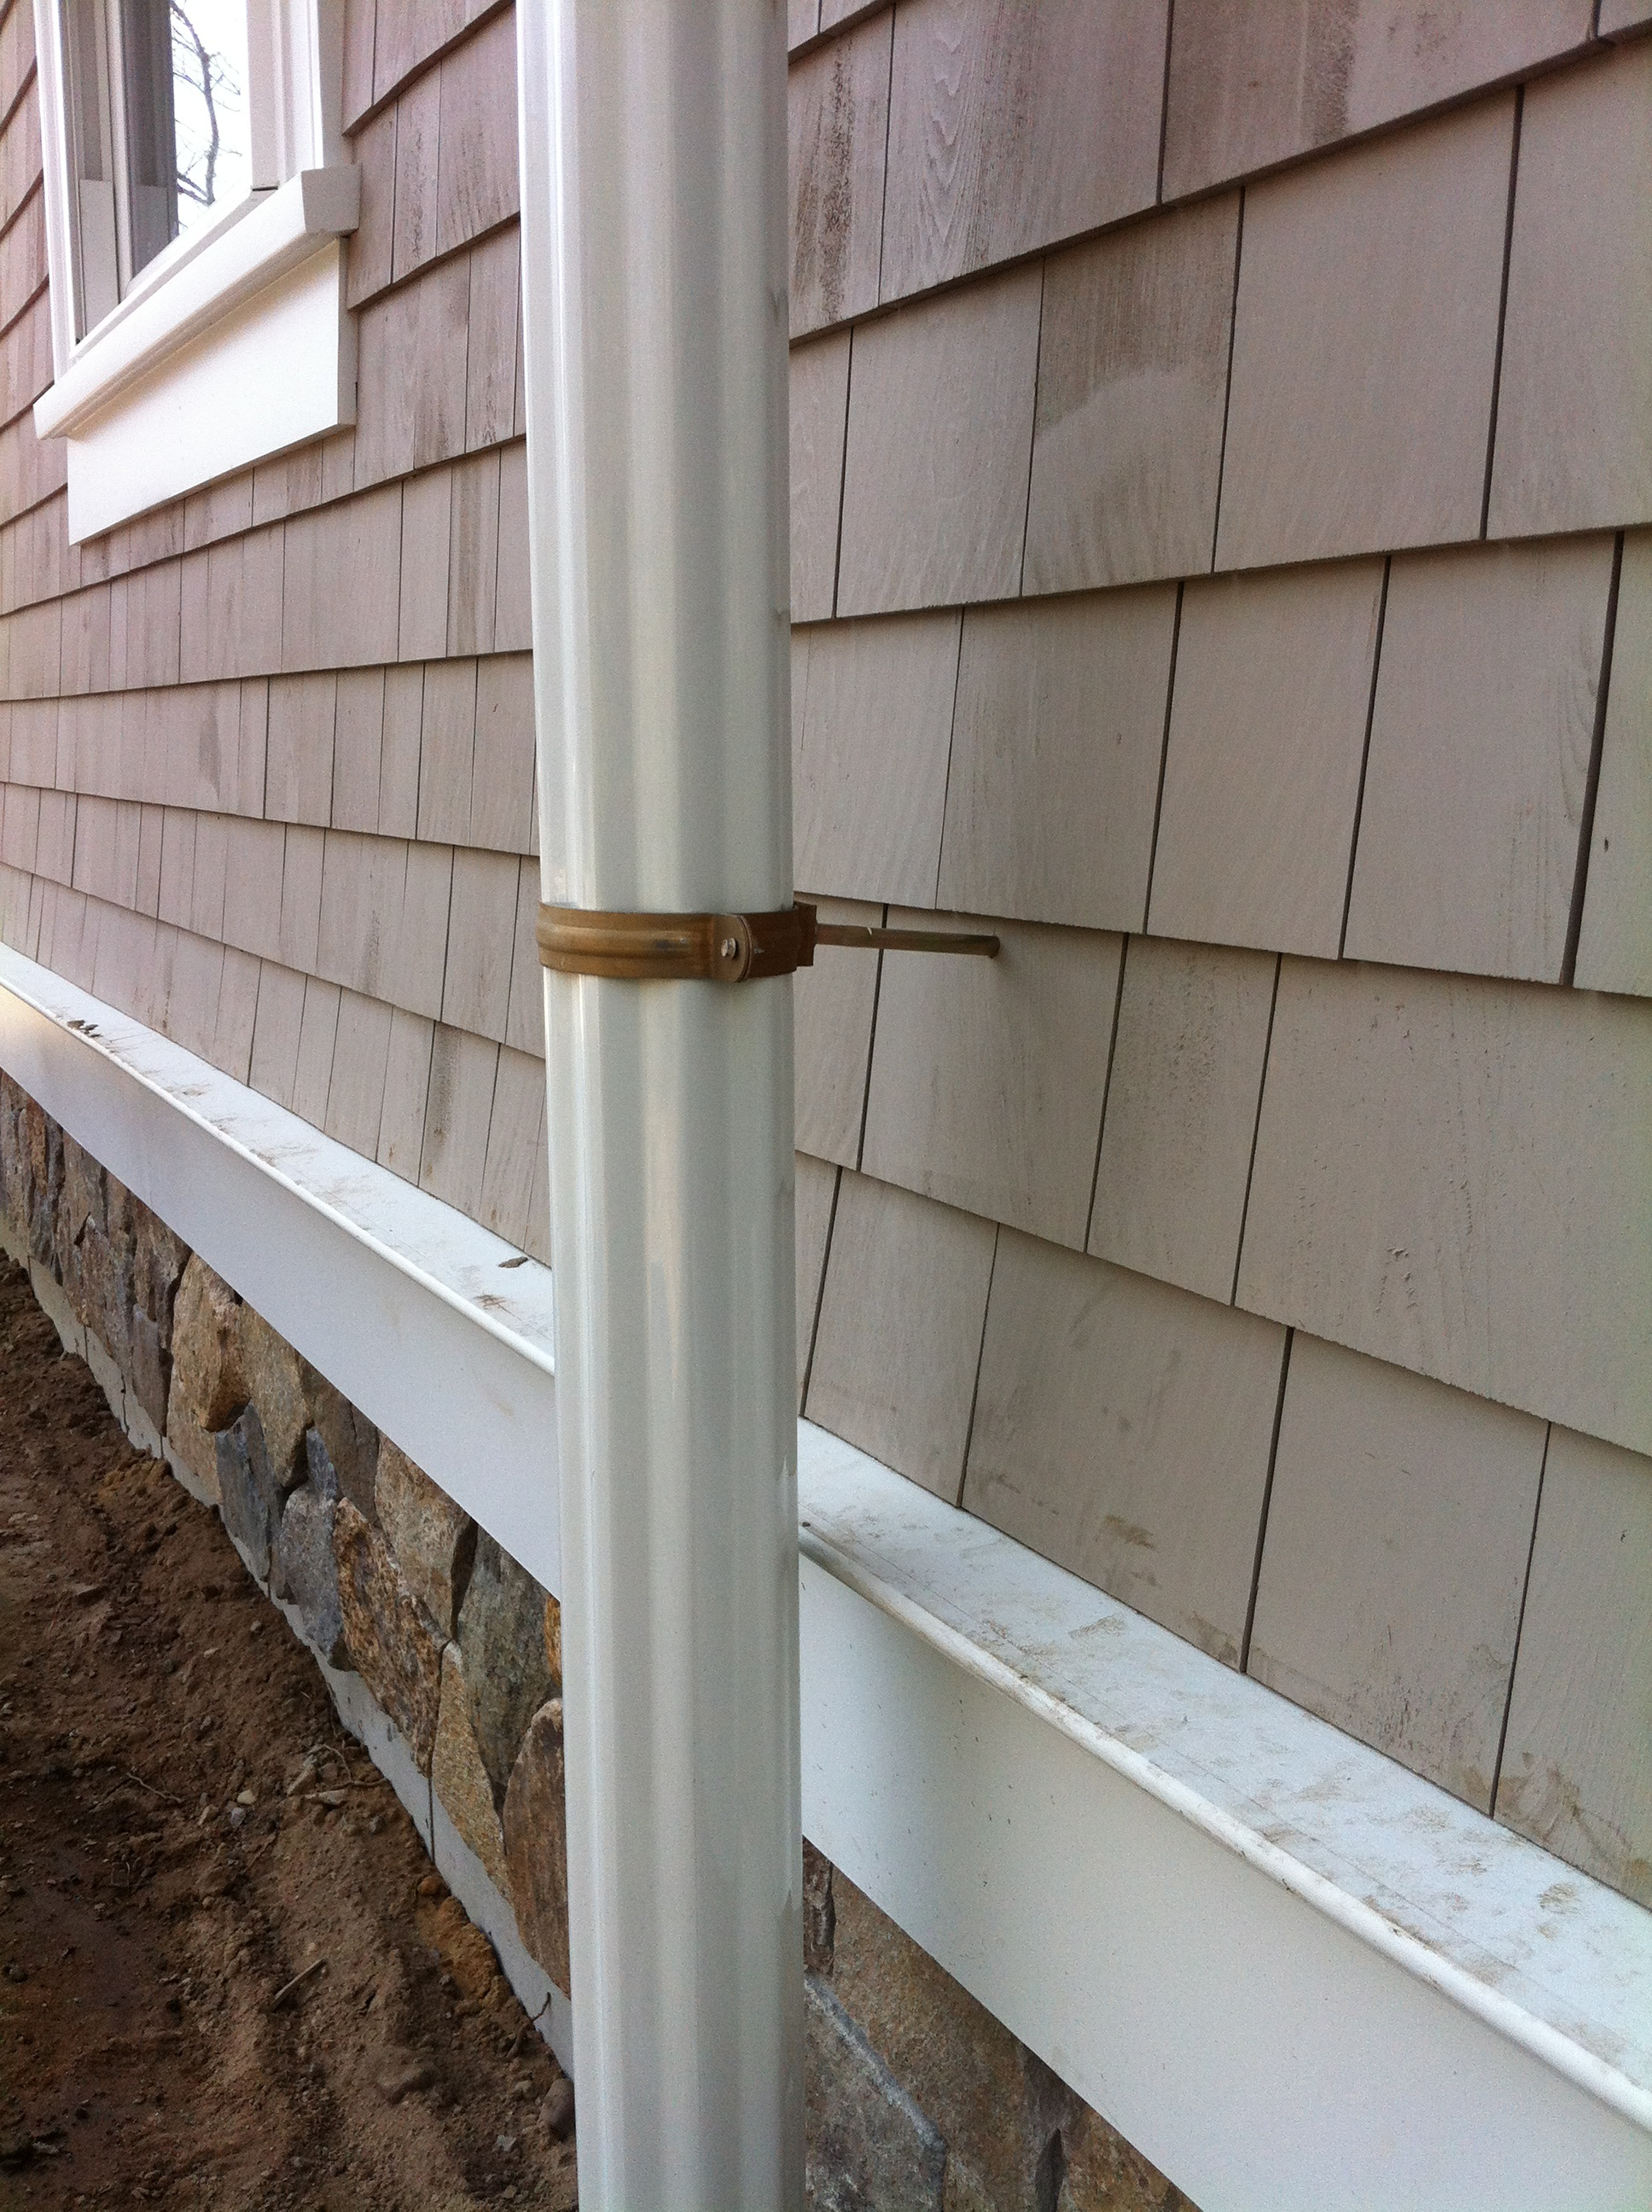 Half Round Gutter System Installed By Gutter Pro New